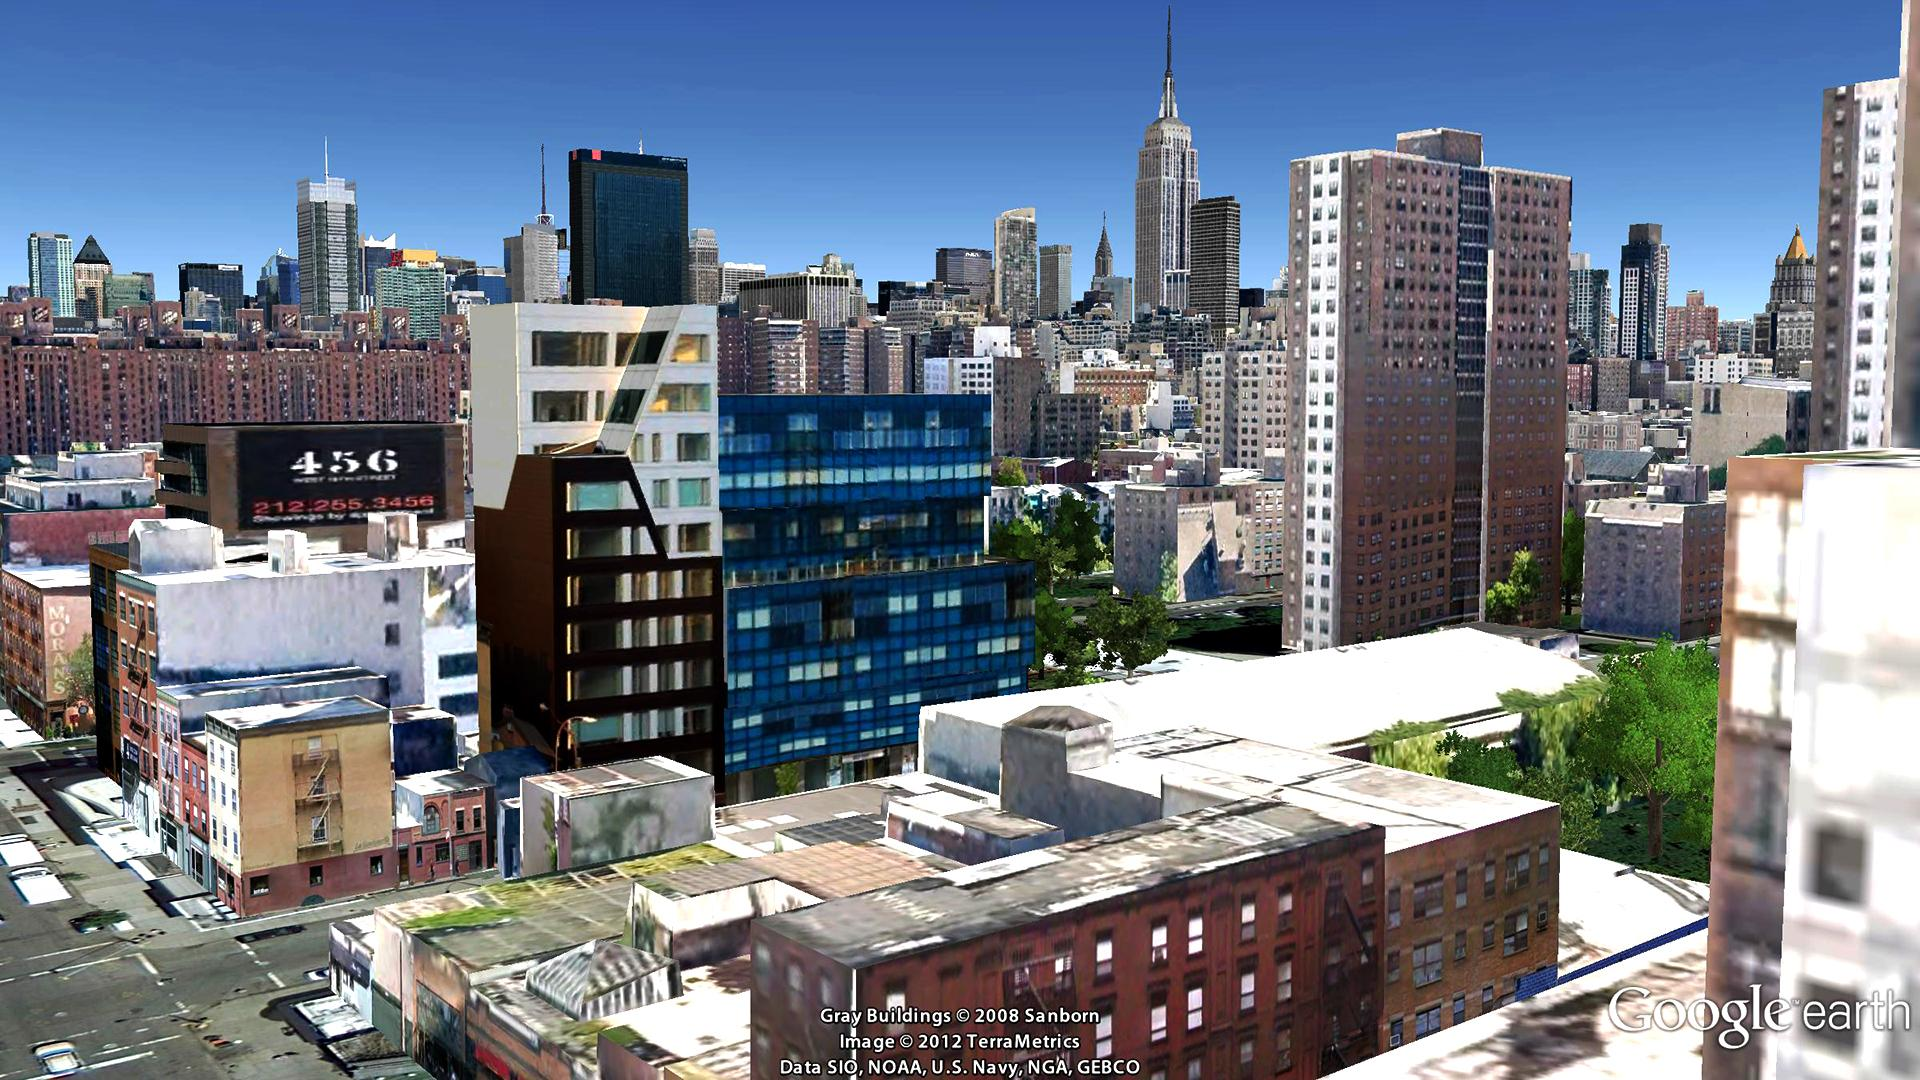 Chelsea Modern, 447 West 18th Street Aerial Imagery